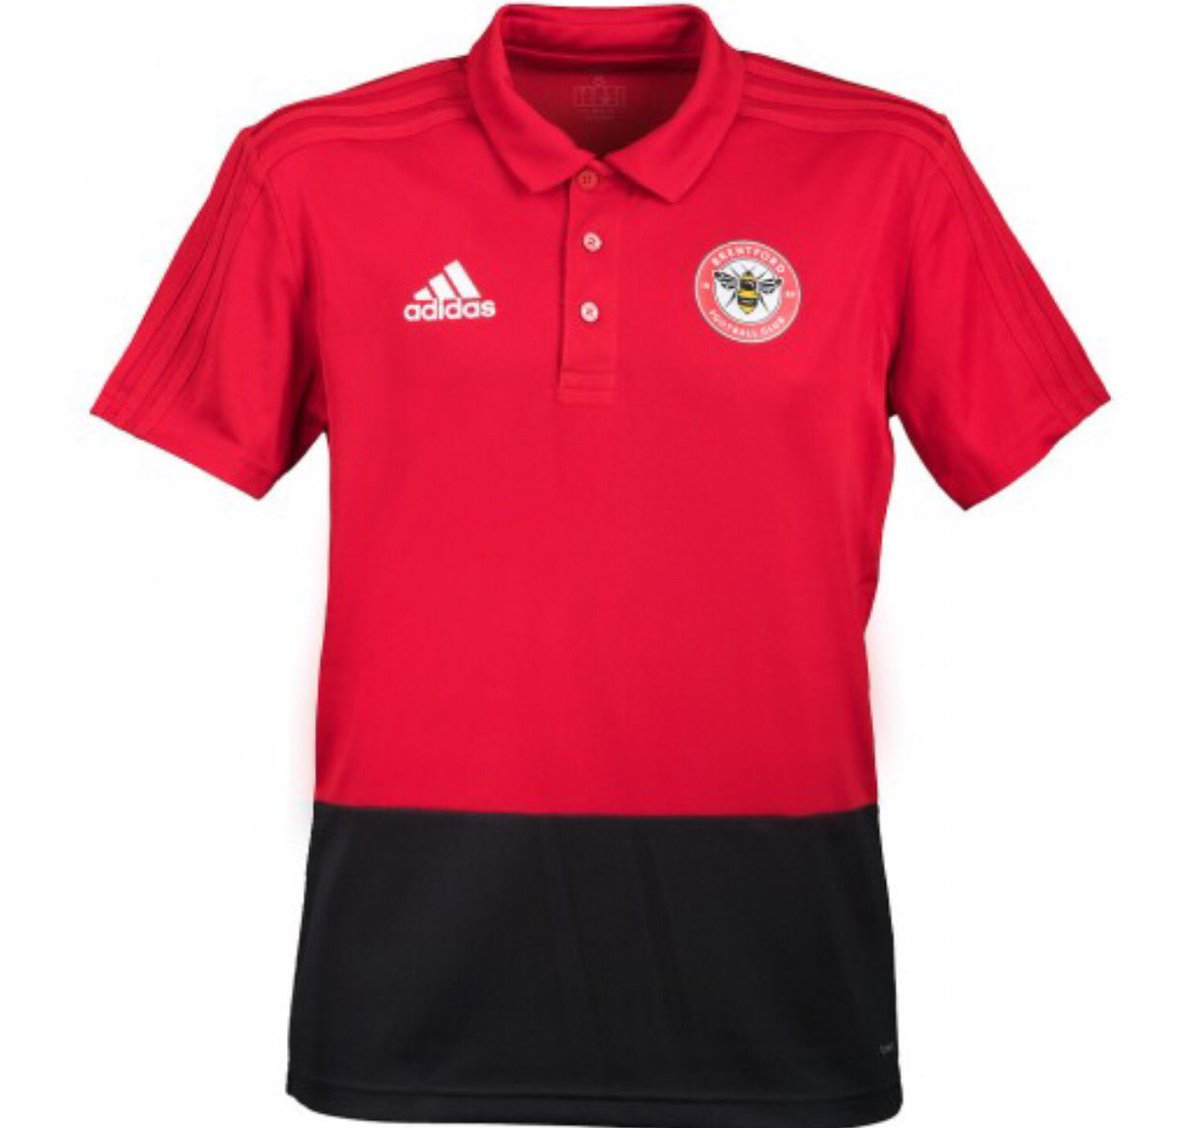 I am giving away a 18/19 training polo size medium.  To enter: - RT this post  - Like this post - Follow @BrentfordFCFan1  The winner will be picked when I reach 200 followers. Good luck!  #giveaway #rttowin #liketowin #football #competition #BrentfordFC #win #football<br>http://pic.twitter.com/syguGcztk6